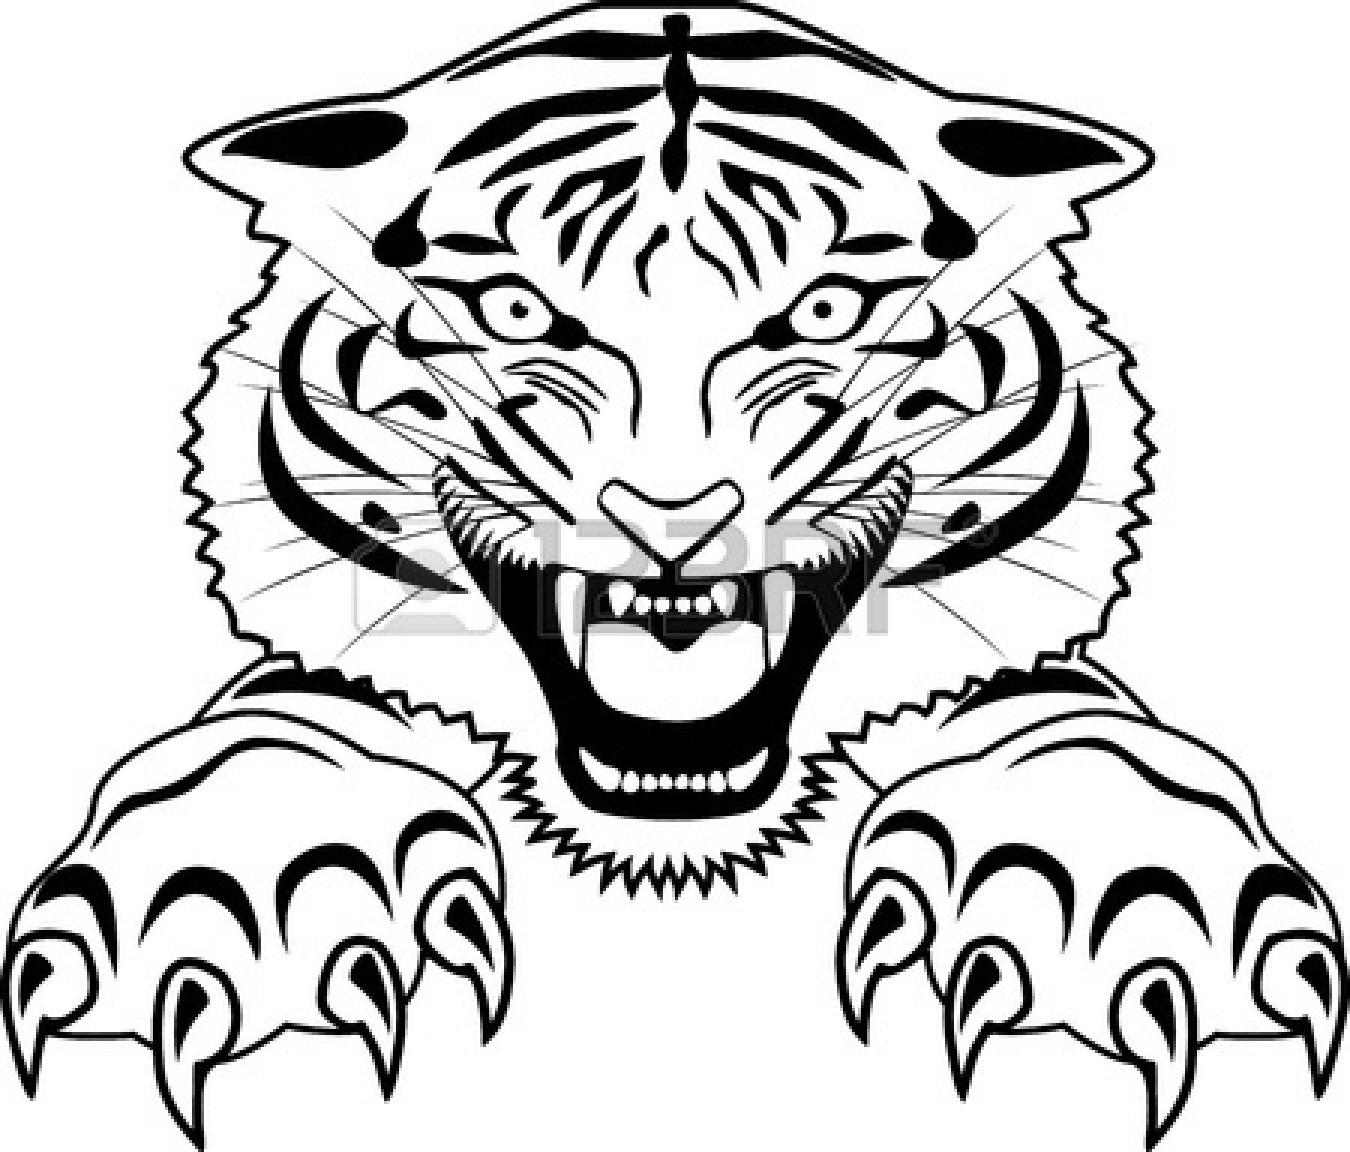 Tiger Head Line Drawing | Free download on ClipArtMag